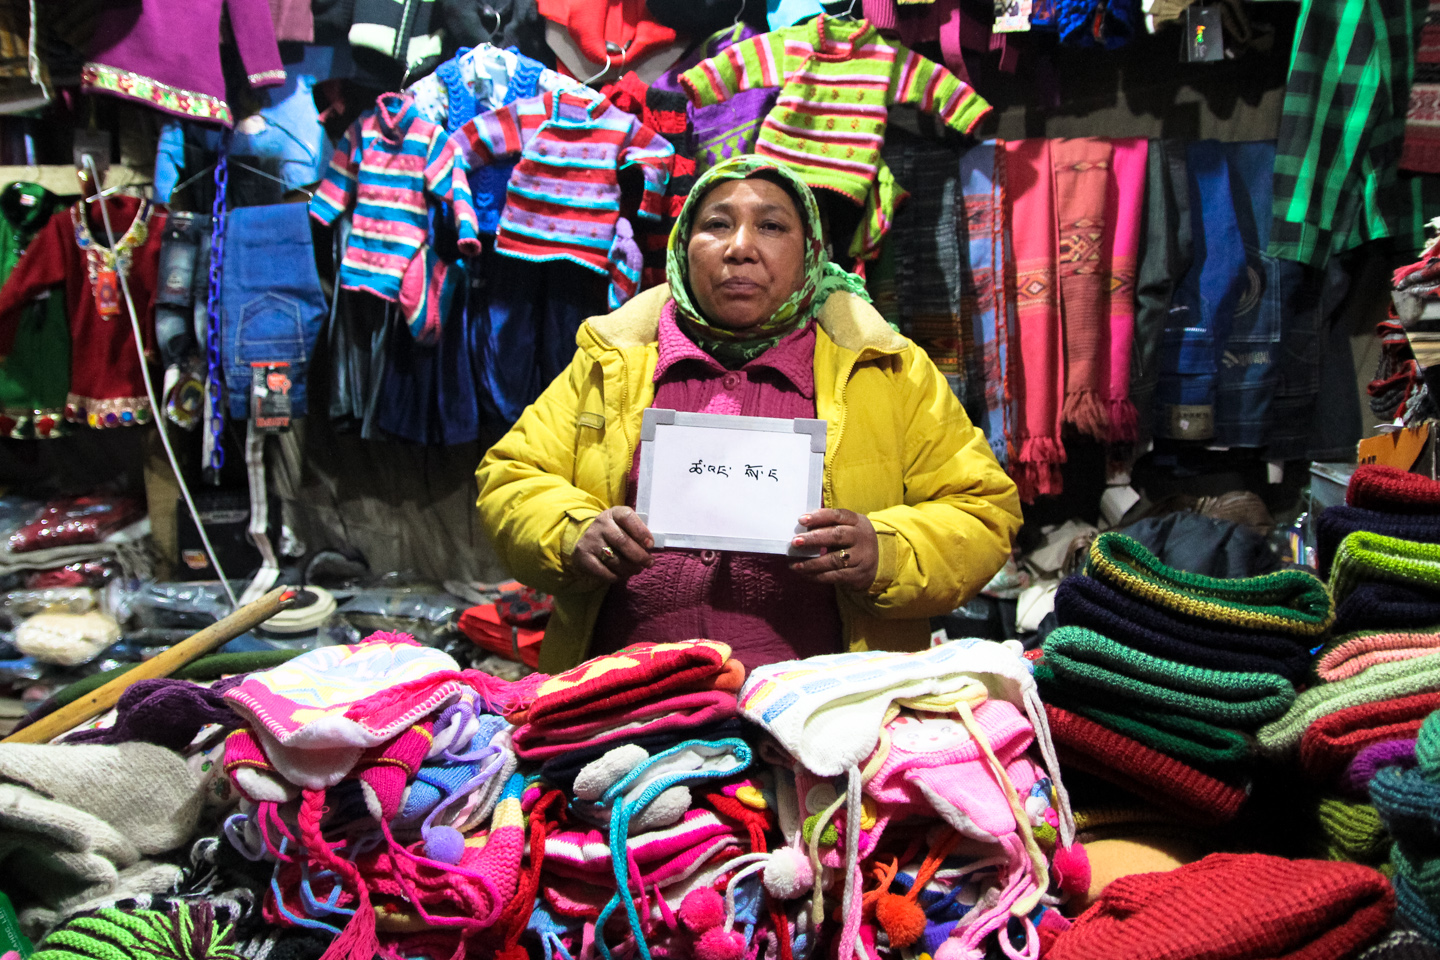 Tsering Dolma sells hats and gloves made of yak wool, along with some imported winter clothes from China, in Leh's main market. She drinks salty tea throughout the day to stay warm.